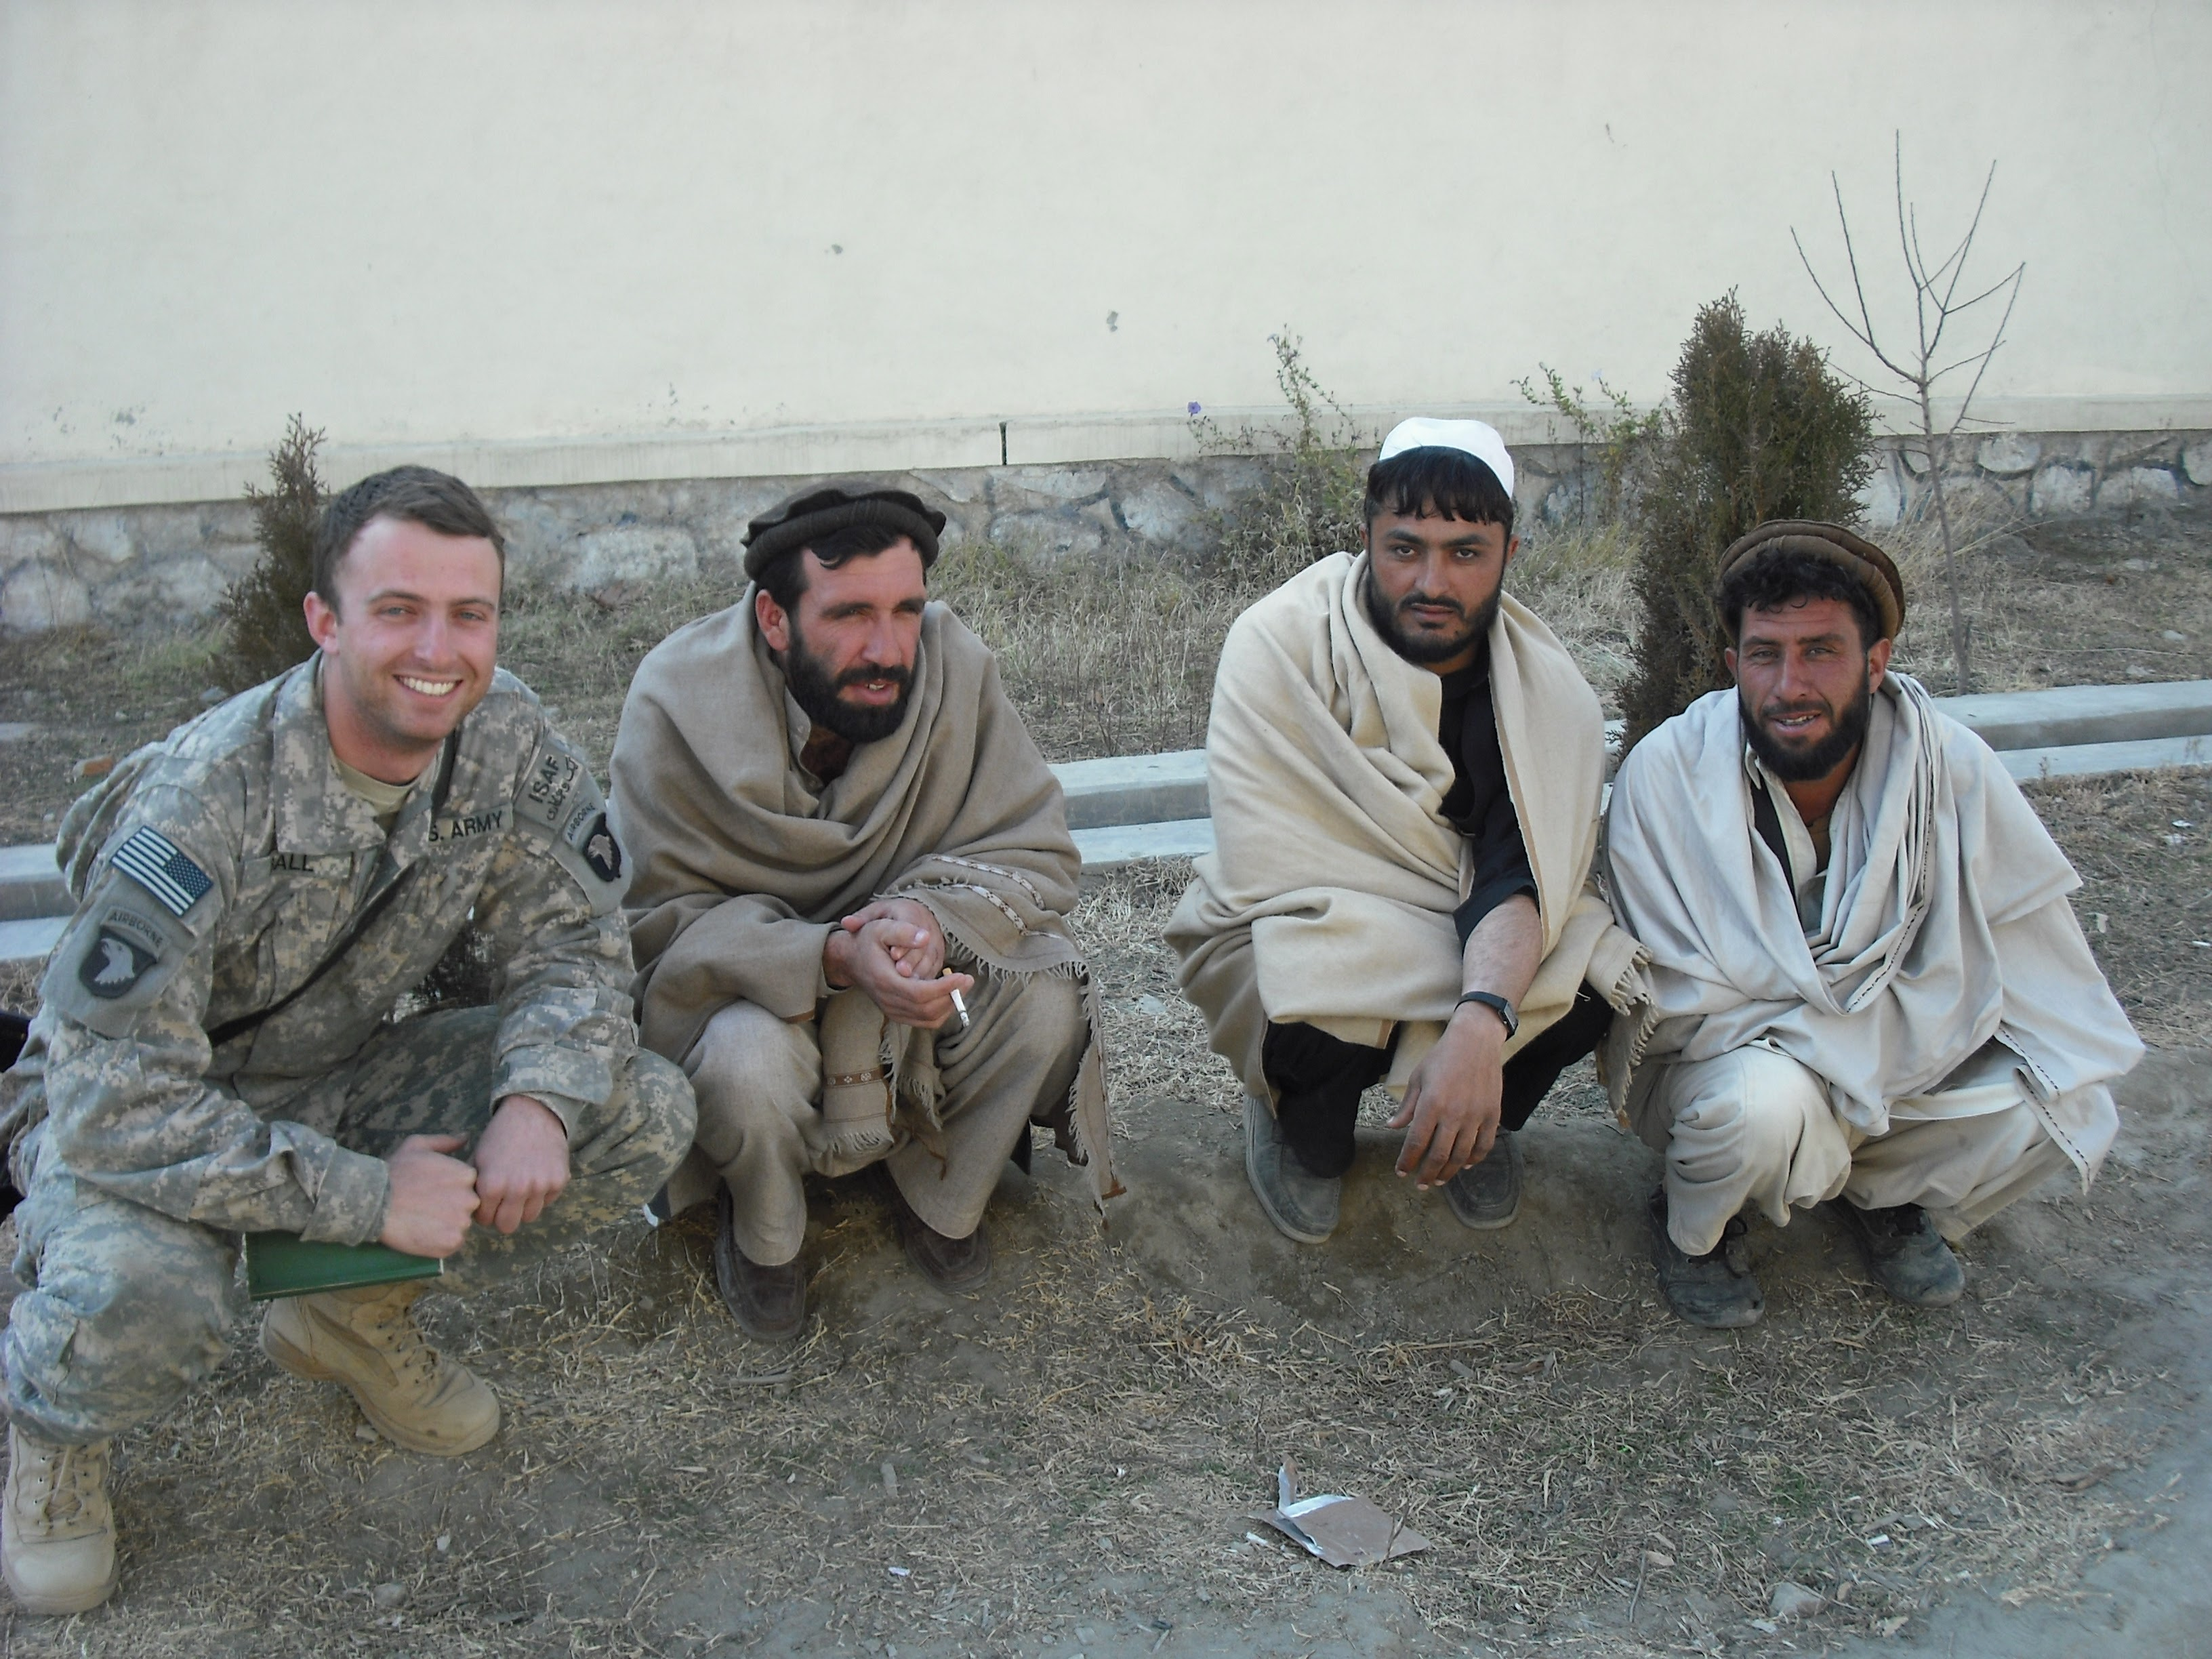 Matthew Ball '08 passed up a lucrative job in the financial sector to serve in Afghanistan as an Army Ranger after graduation. He and his cohorts relied on Afghani translators who frequently risked their lives for the American Troops.